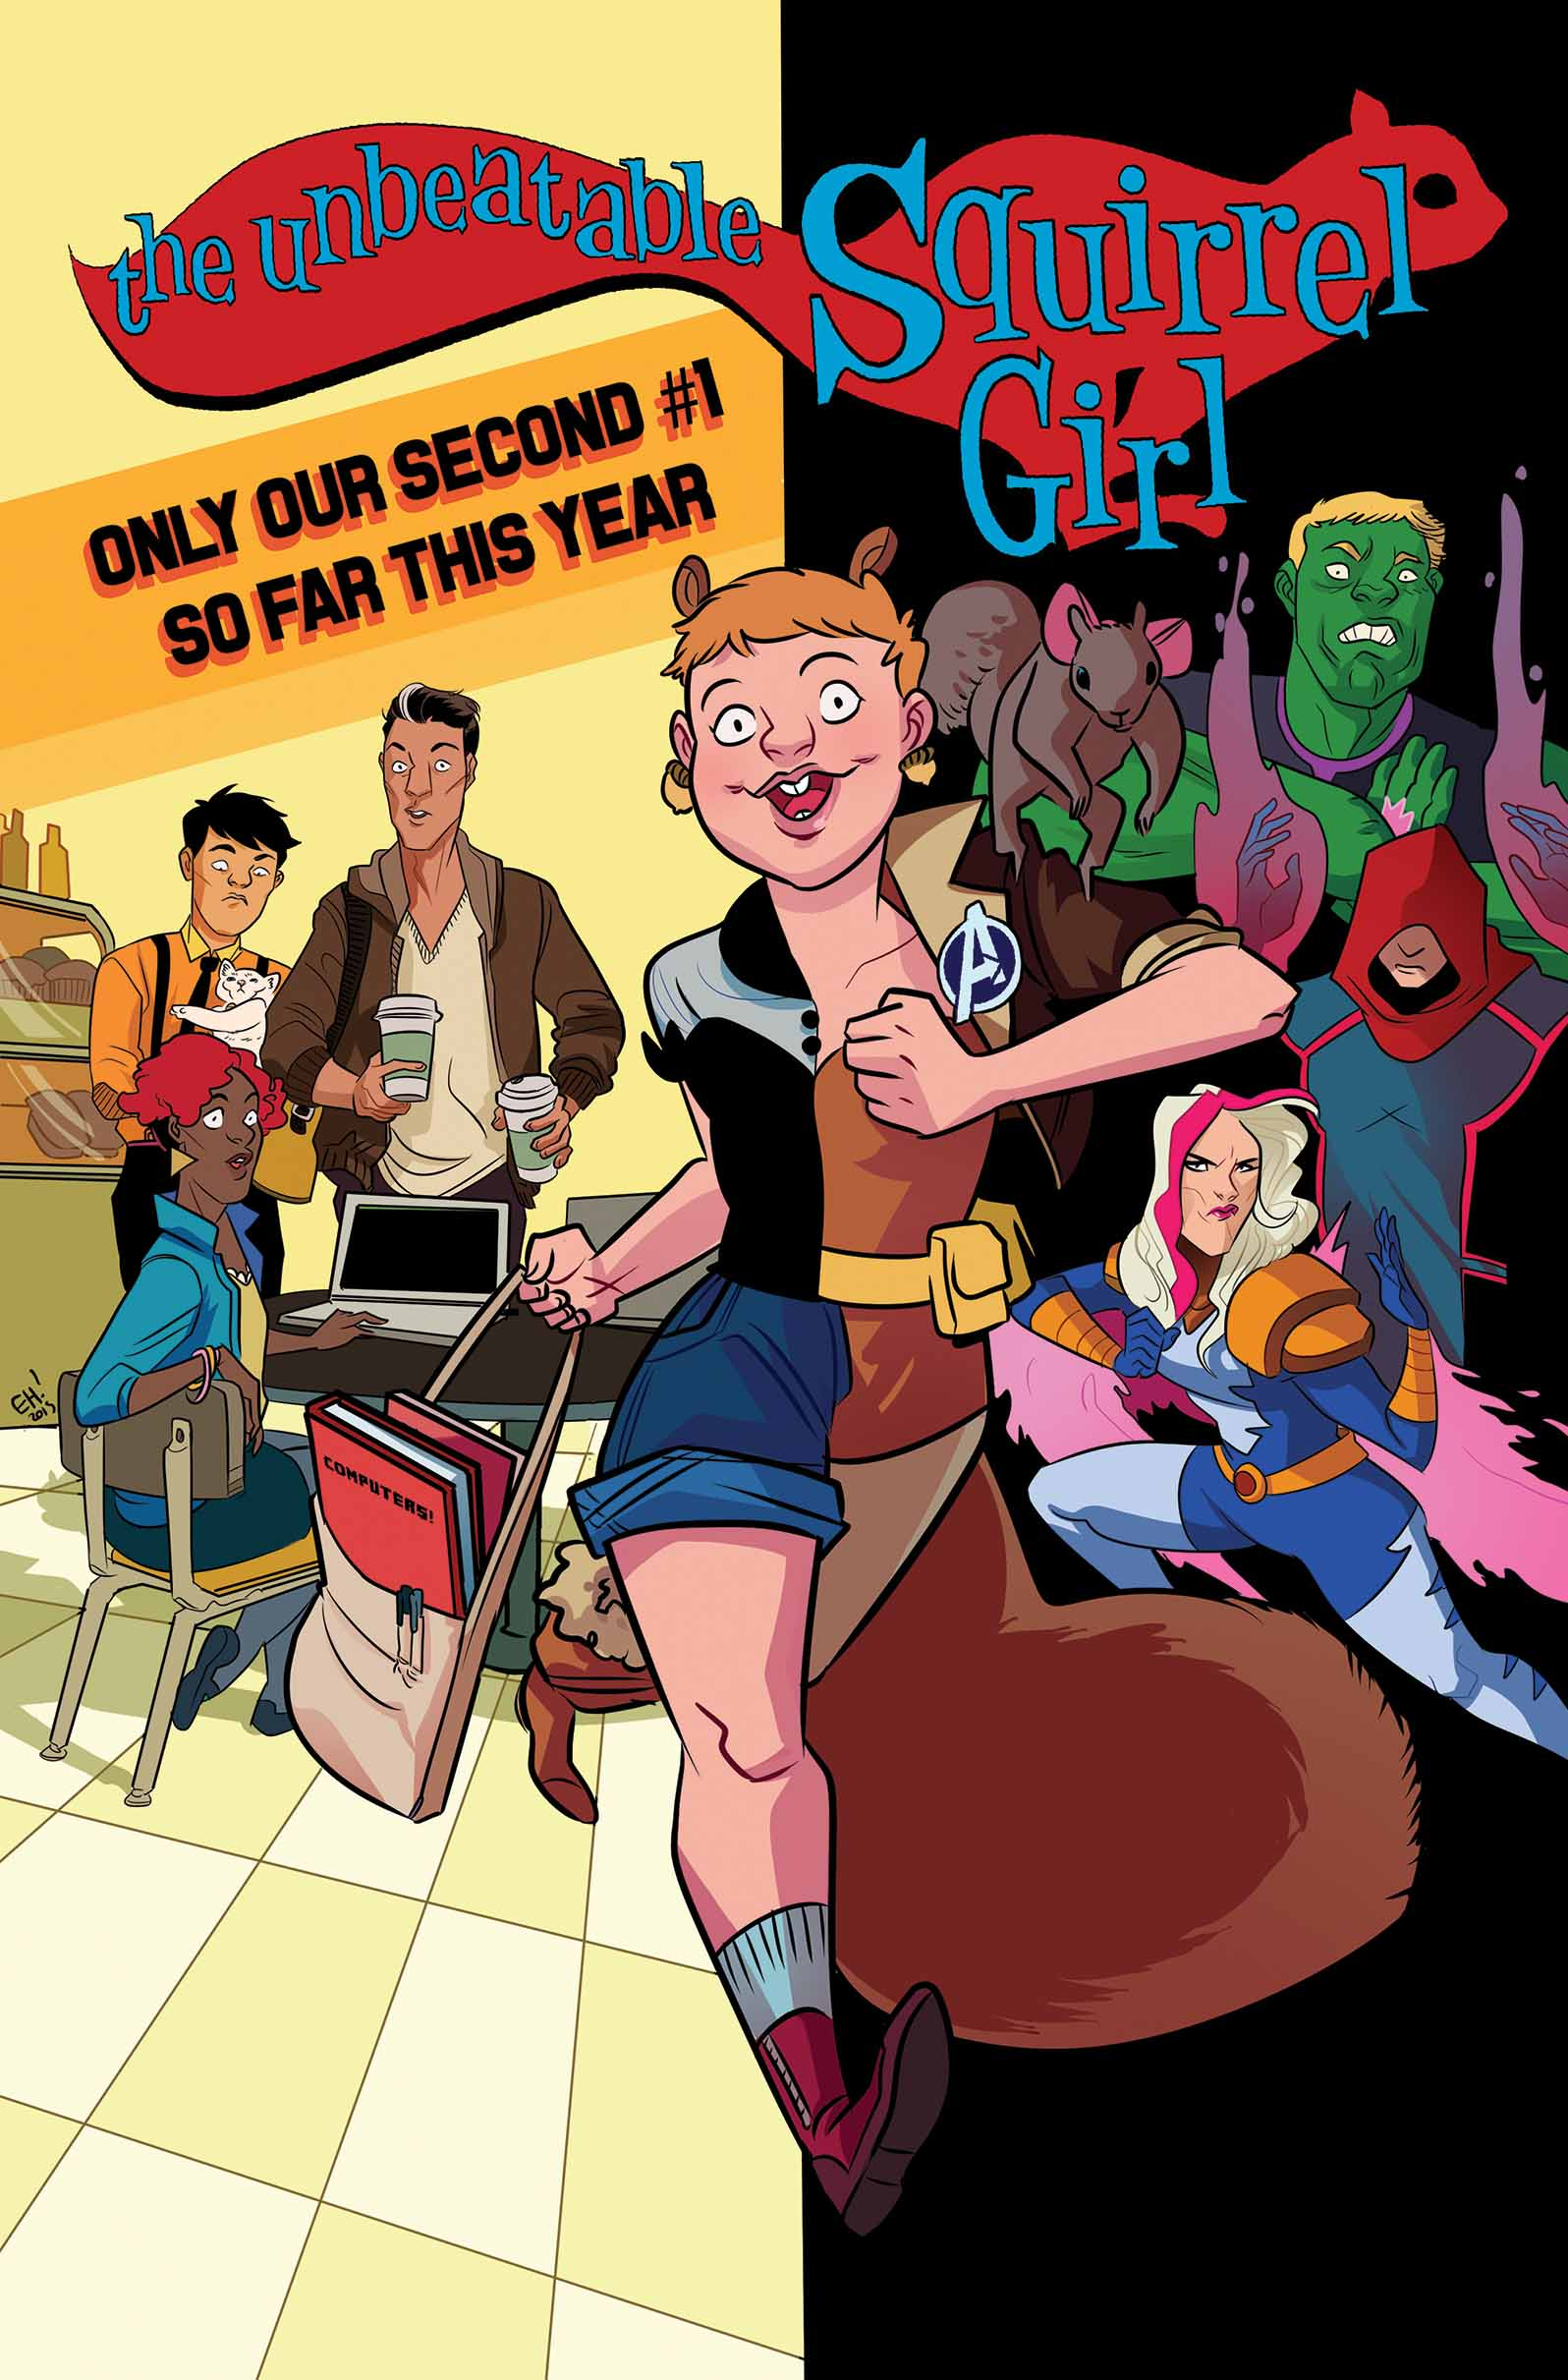 Everyone is Going NUTS For The Unbeatable Squirrel Girl!